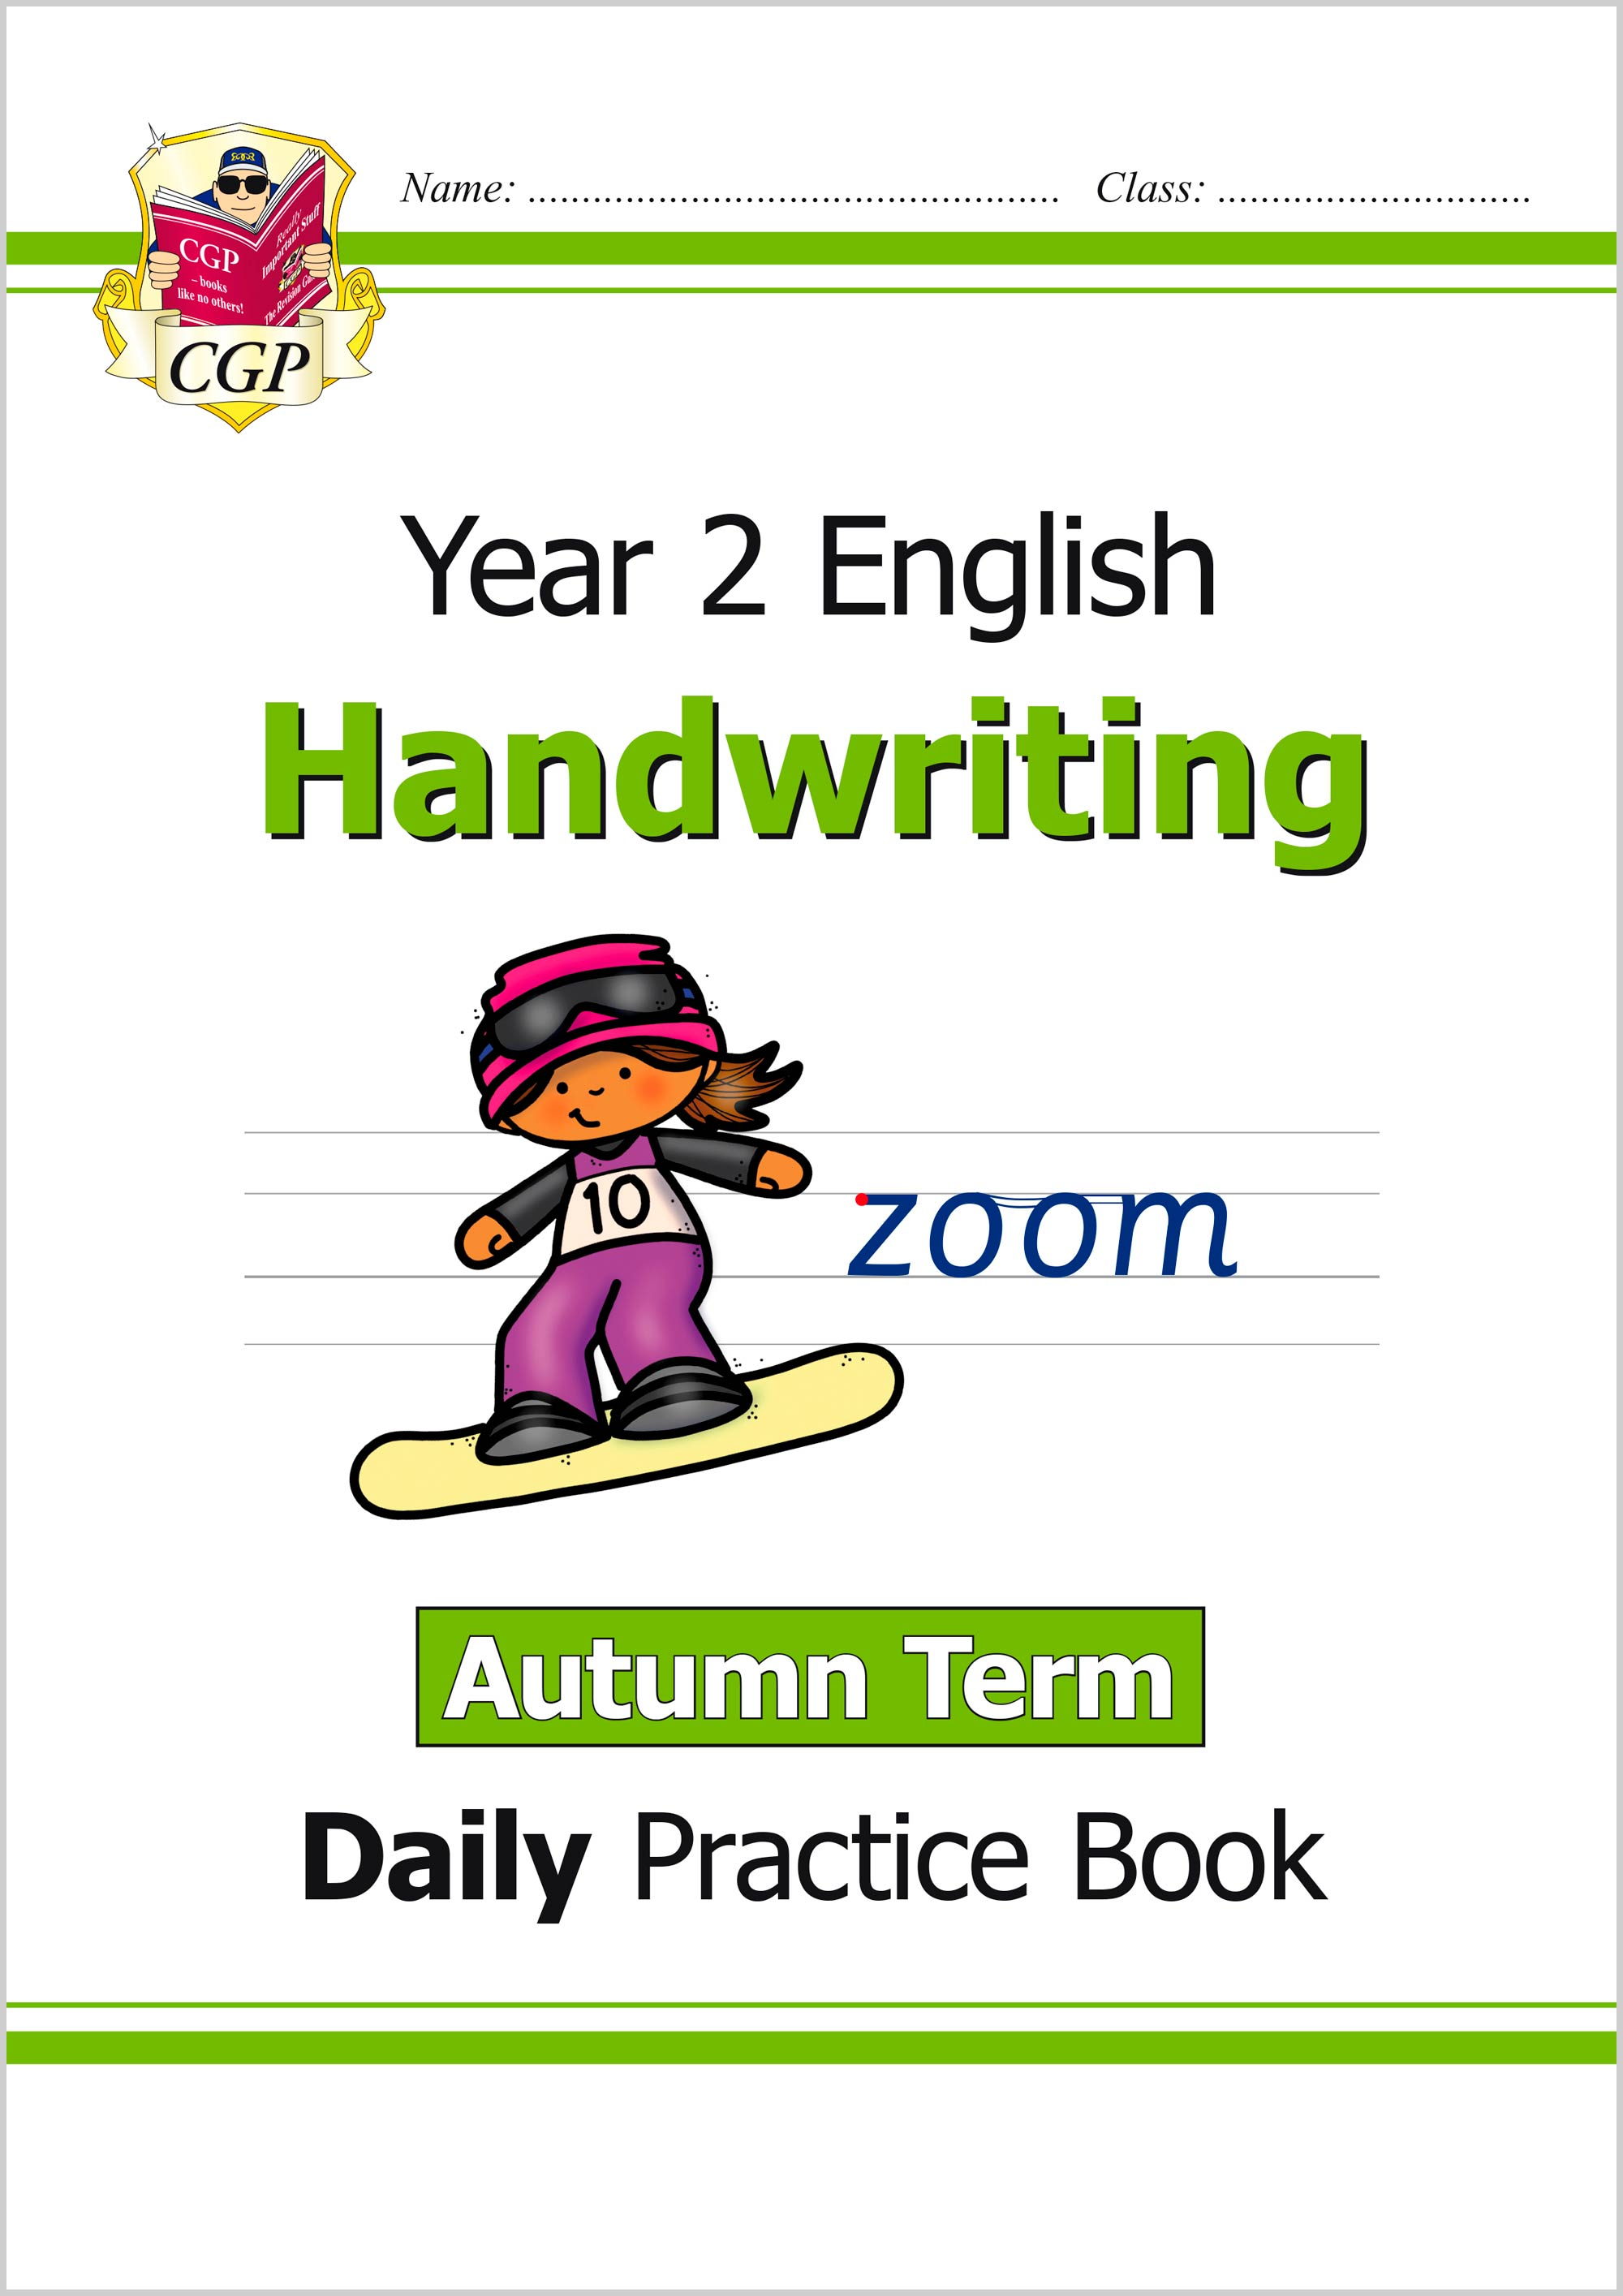 E2HWAU11 - New KS1 Handwriting Daily Practice Book: Year 2 - Autumn Term